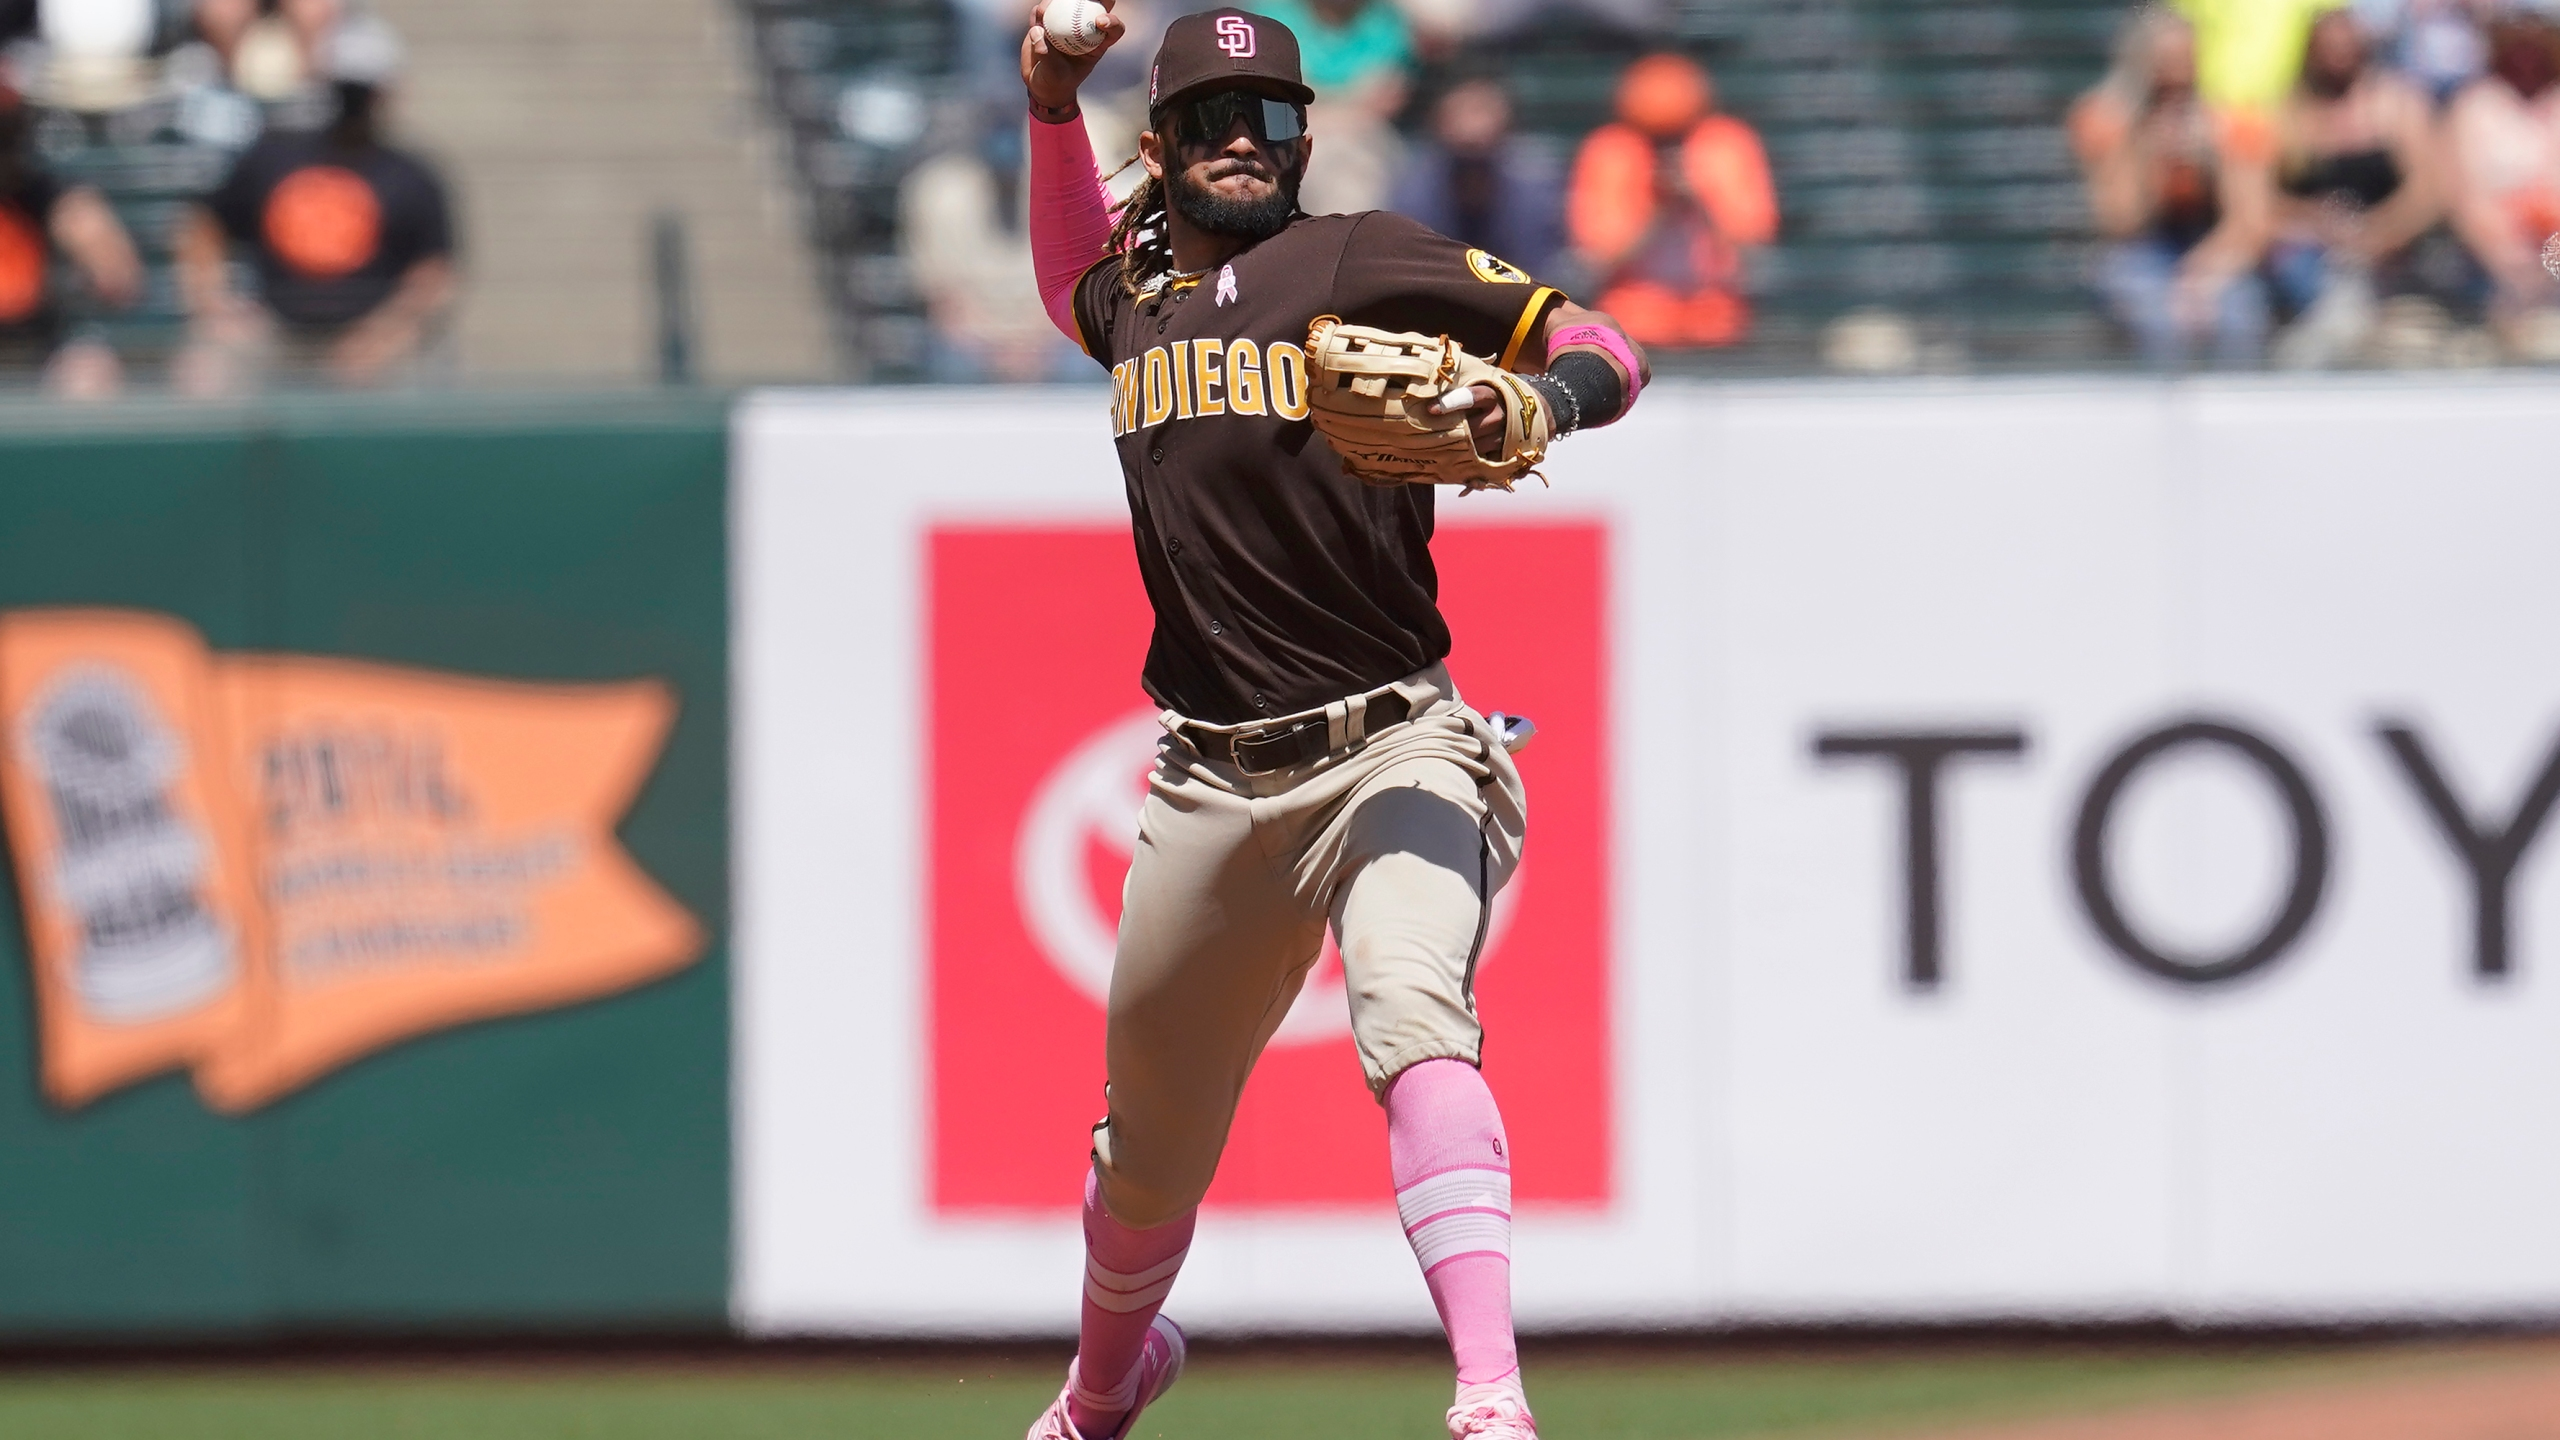 San Diego Padres shortstop Fernando Tatis Jr. throws out San Francisco Giants' Austin Slater at first base during the fifth inning of a baseball game in San Francisco on May 9, 2021. (Jeff Chiu / Associated Press)